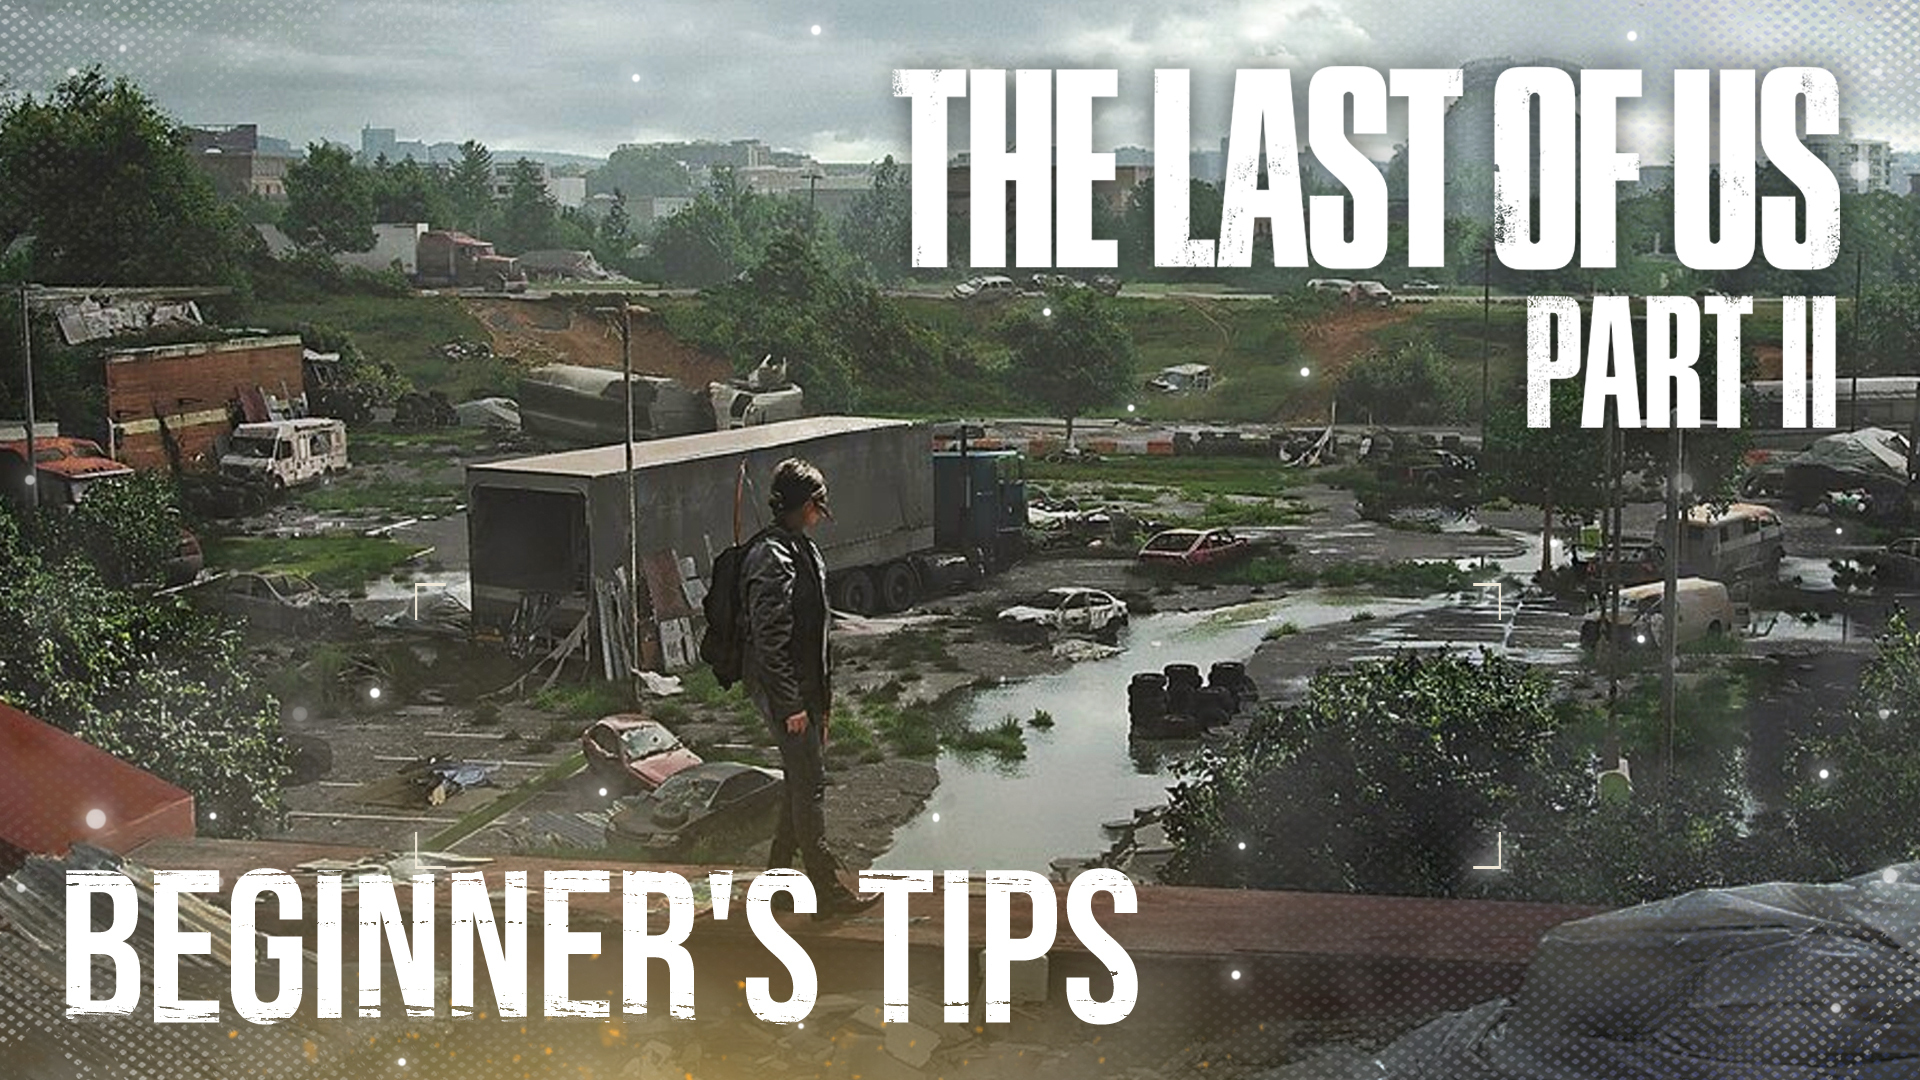 These beginner tips will help propel you through The Last of Us Part 2.